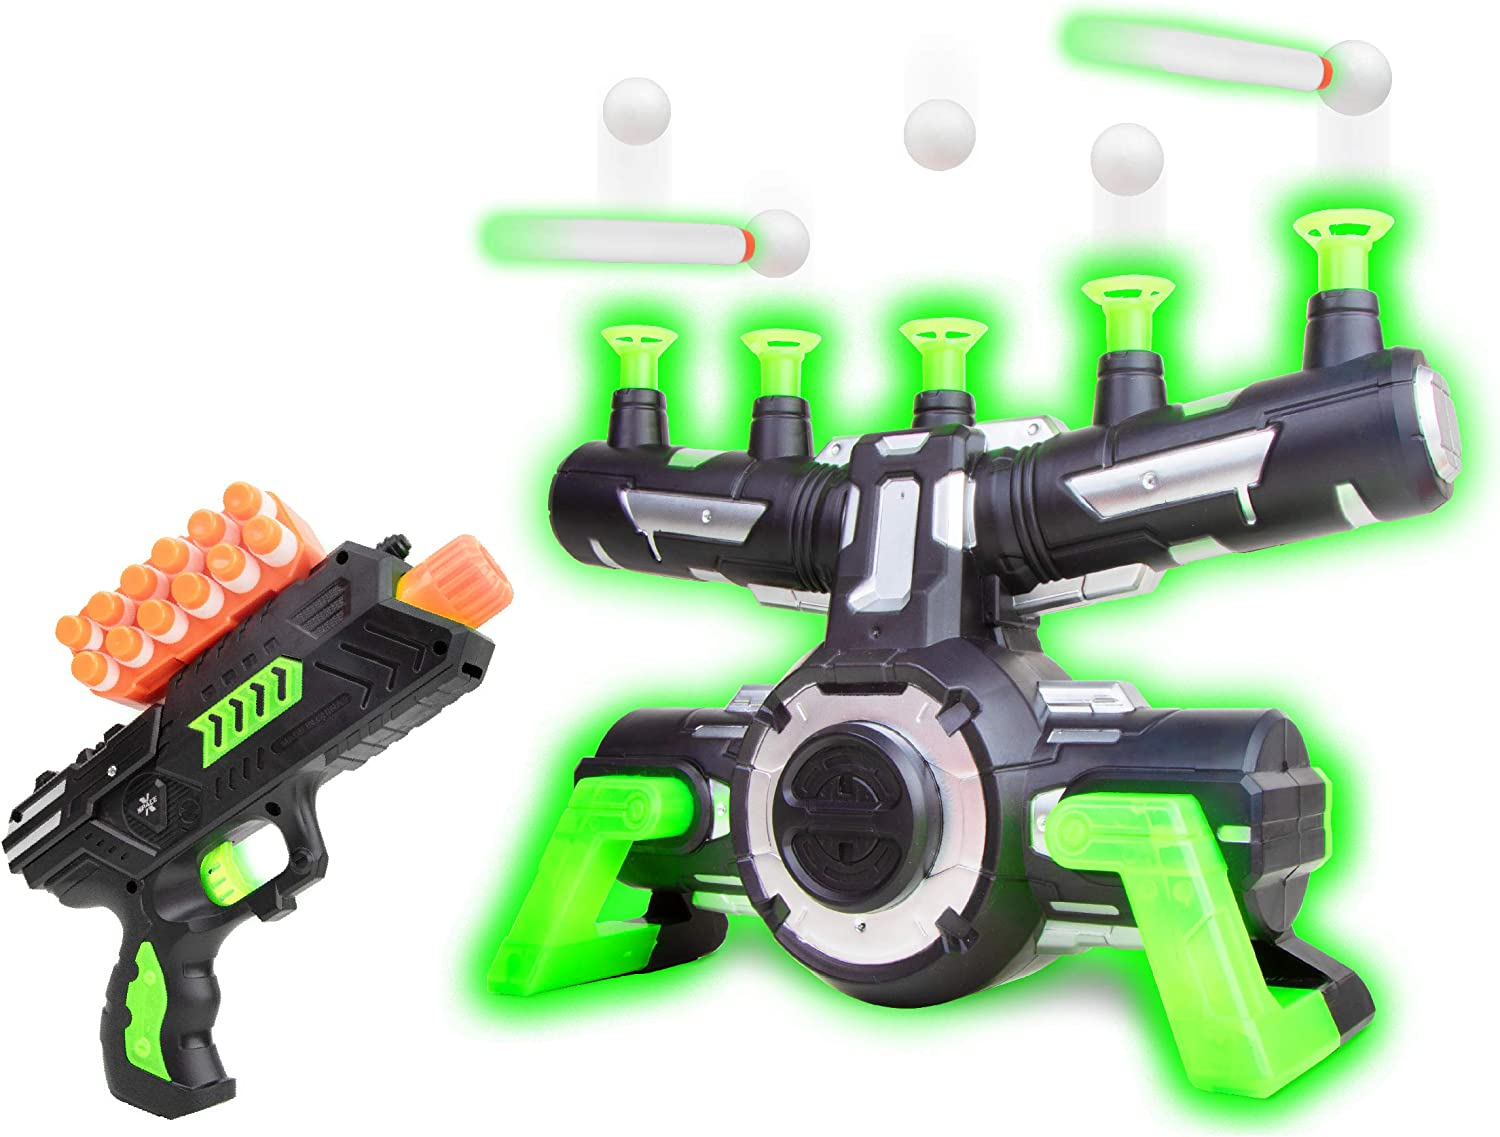 USA Toyz Astroshot Zero GX Glow in The Dark Shooting Games – Target Practice Toys for Boys and Girls with Foam Dart Gun, 10 Floating Ball Targets, and 5 Flip Targets